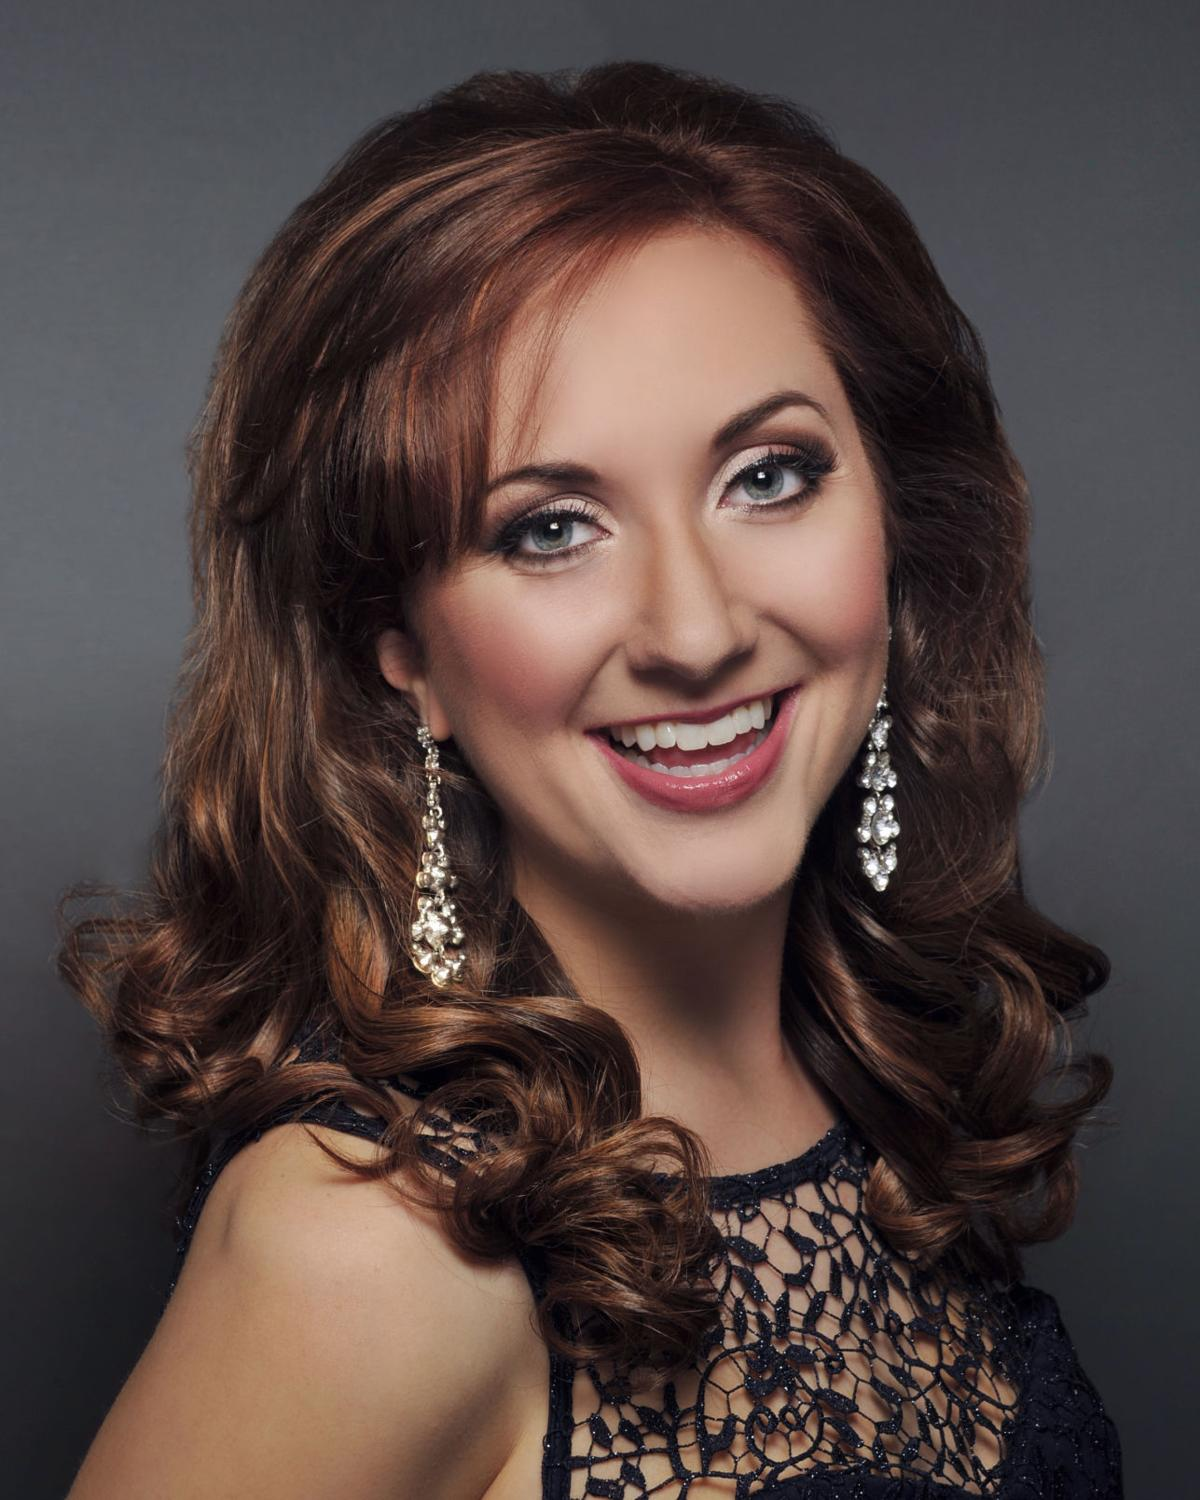 Miss Alaska 2017: Angelina Klapperich